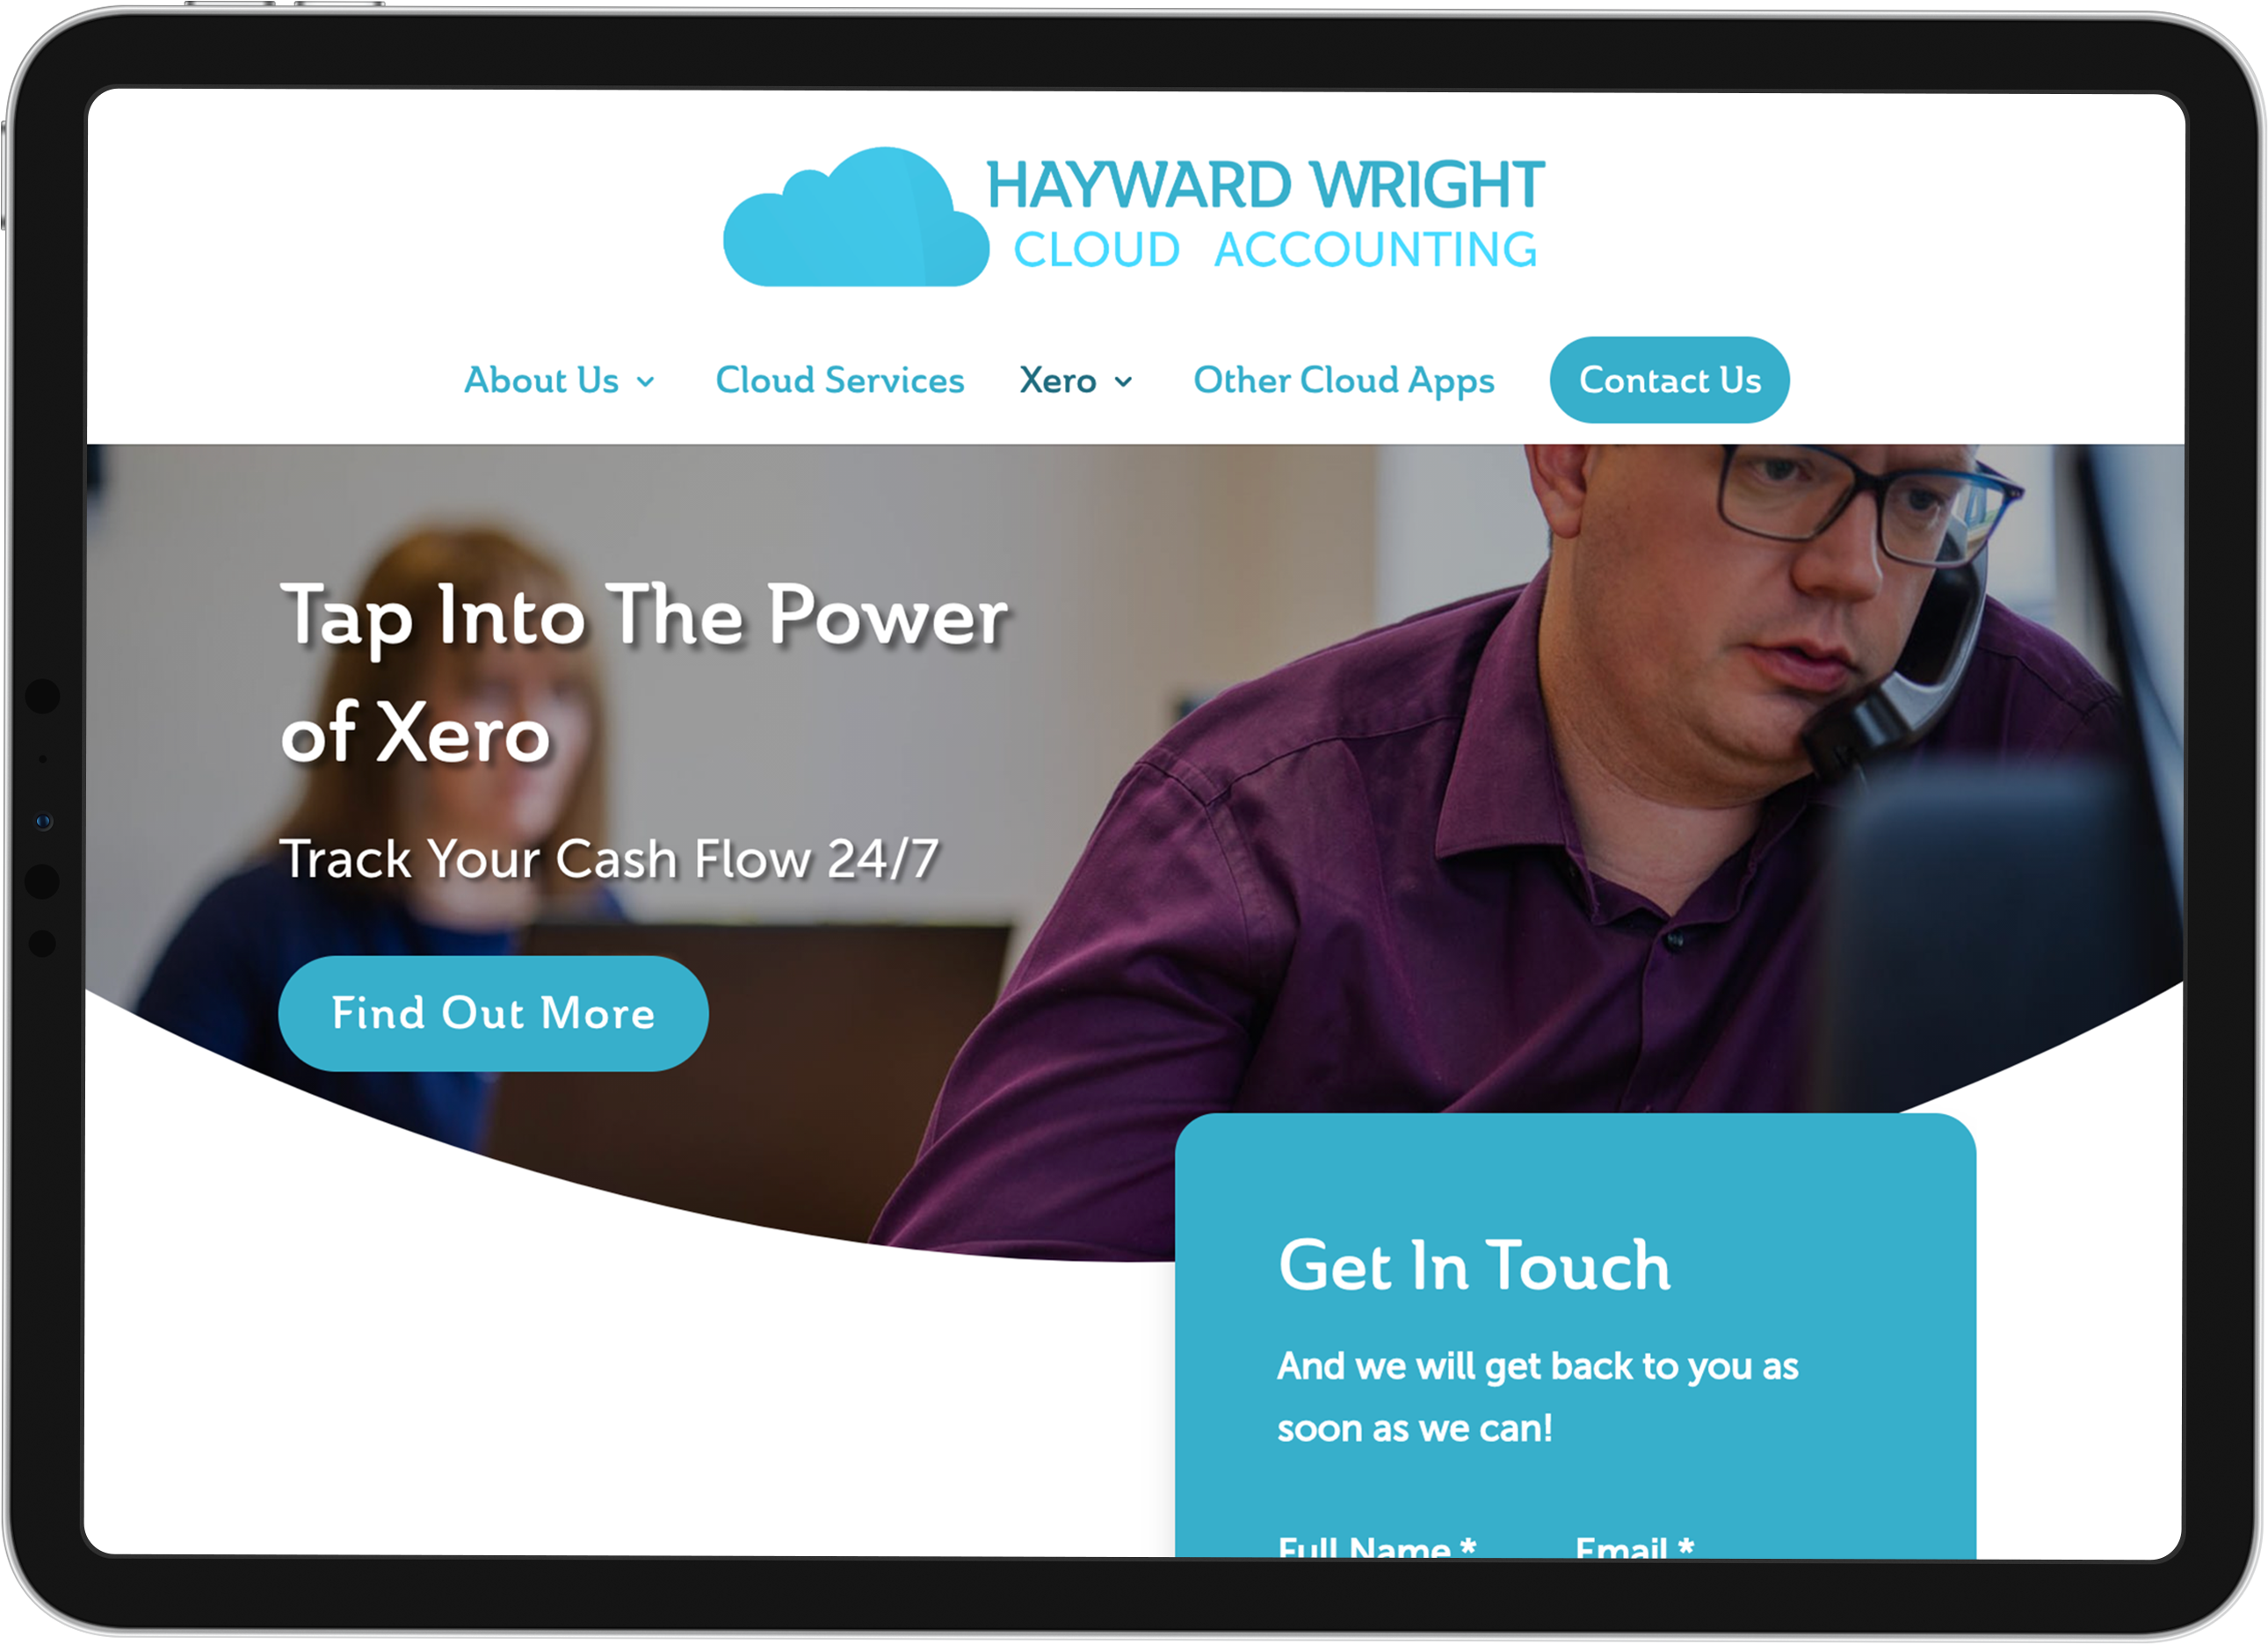 hayward wright cloud accounting business branding website on ipad showing xero page